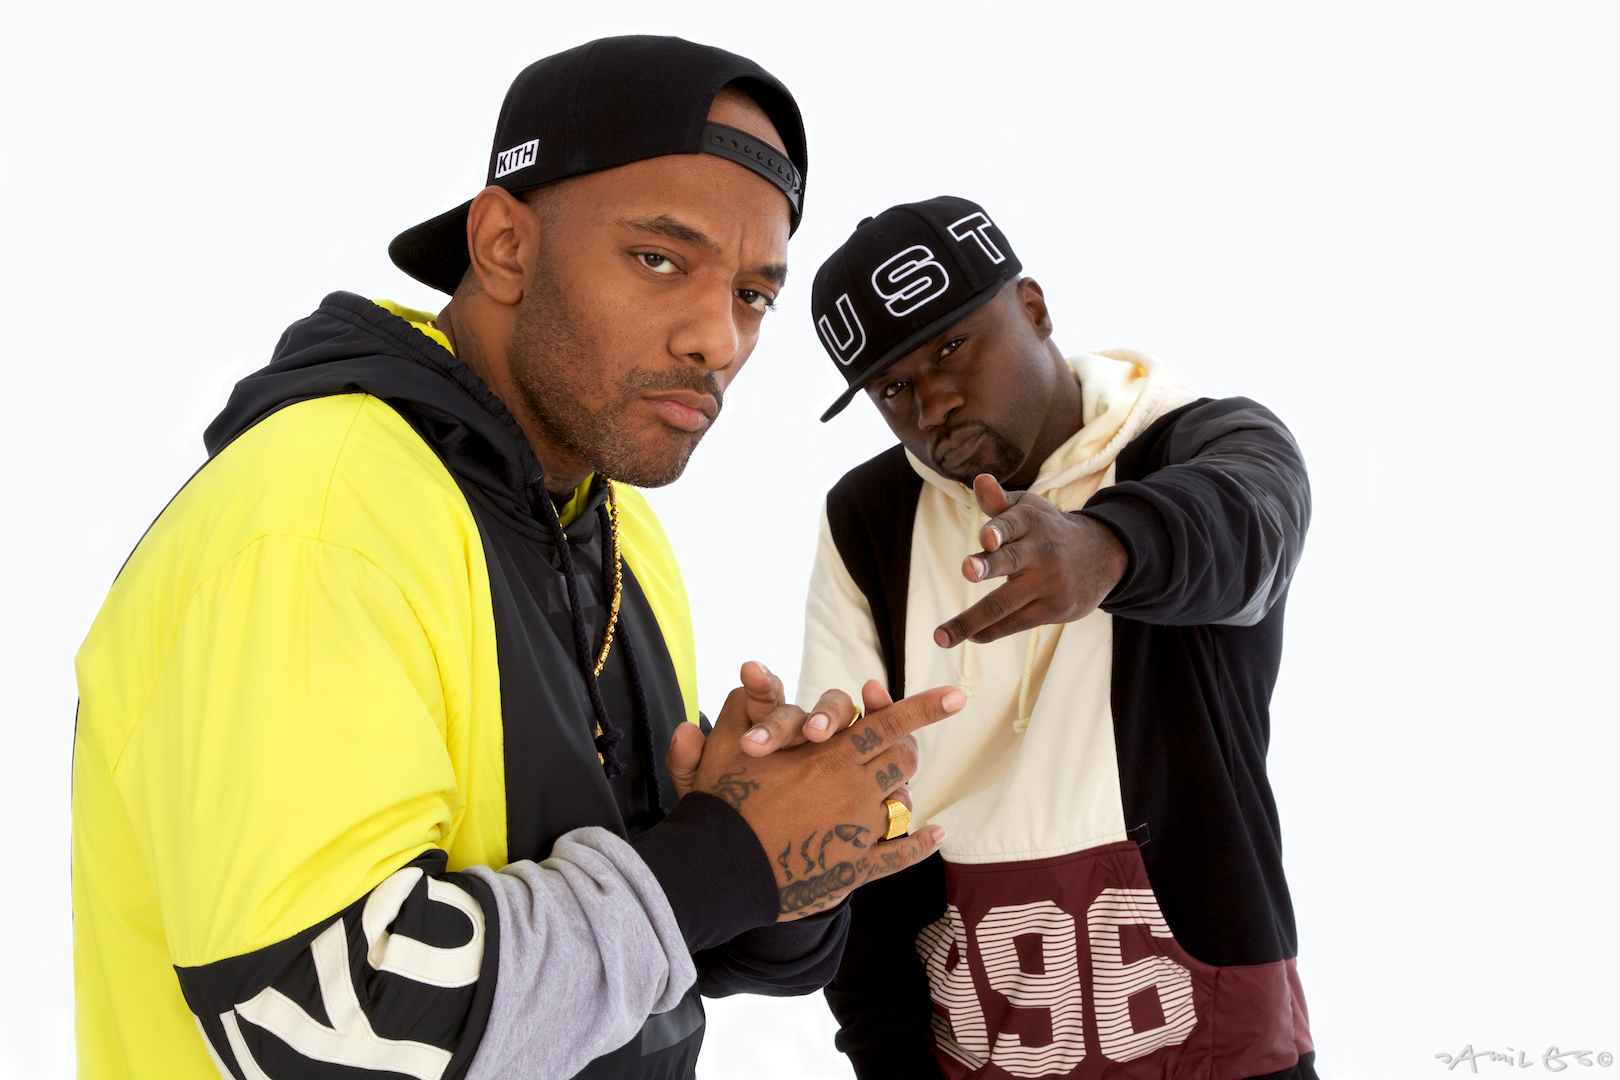 Mobb Deep_By Jamil GS20141209_KITH_0205.jpg